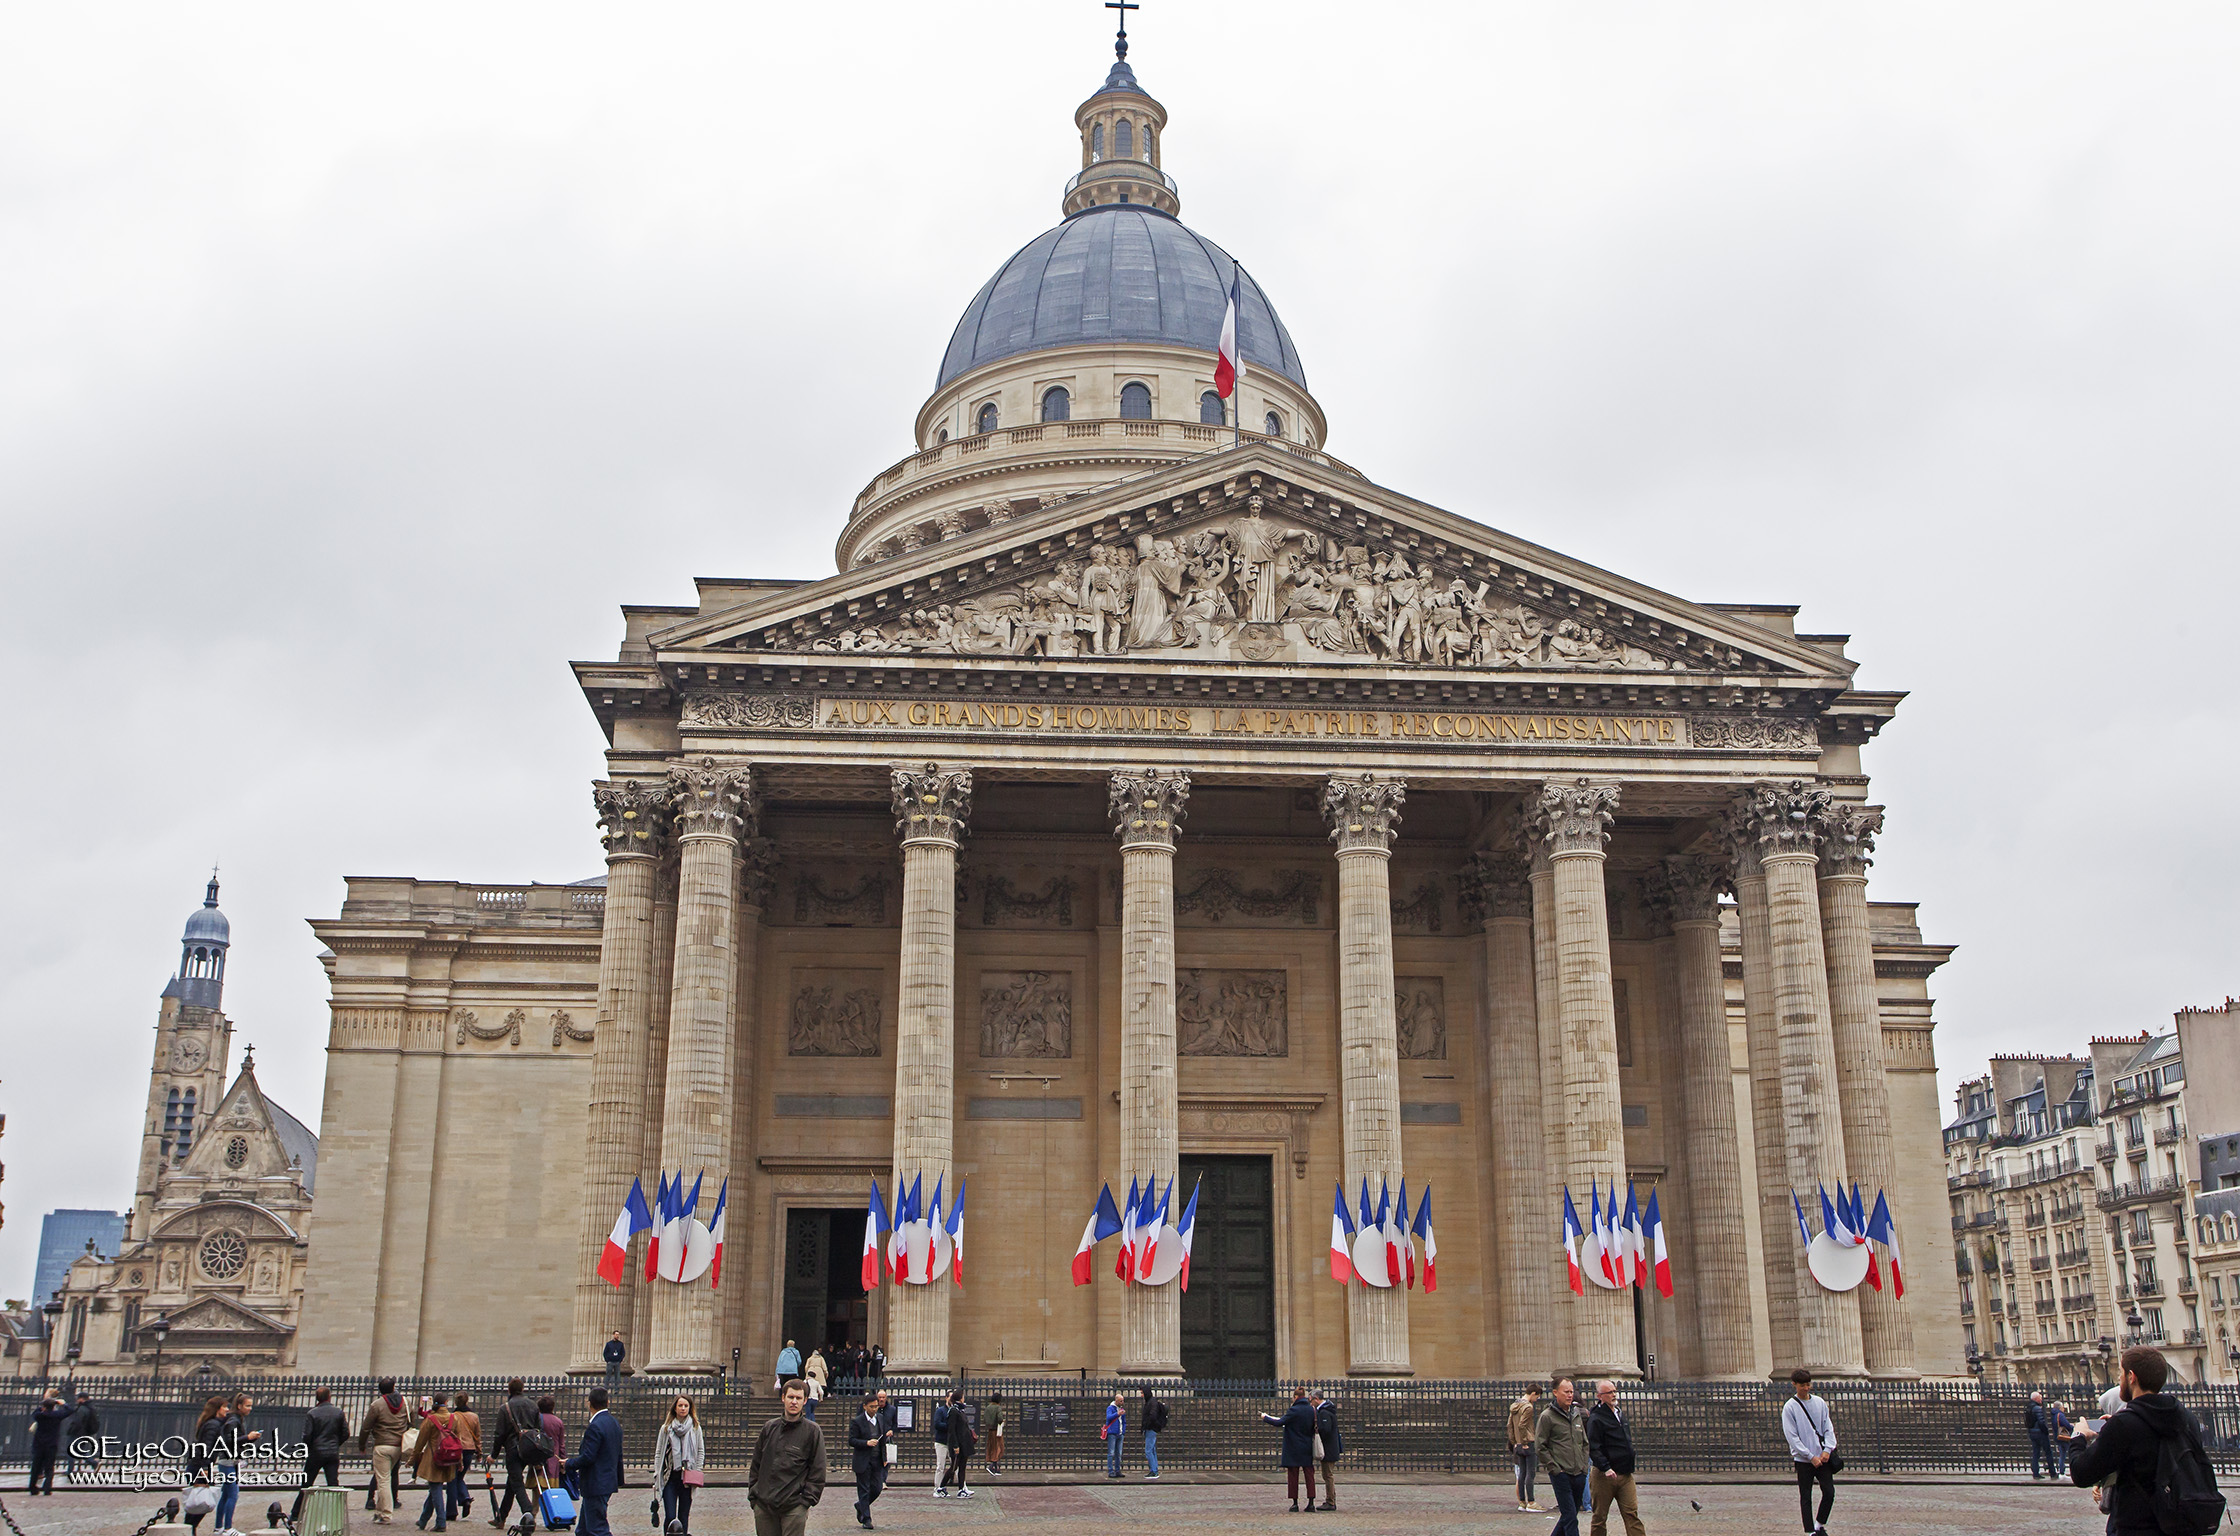 The Pantheon all decked out on Election Day.